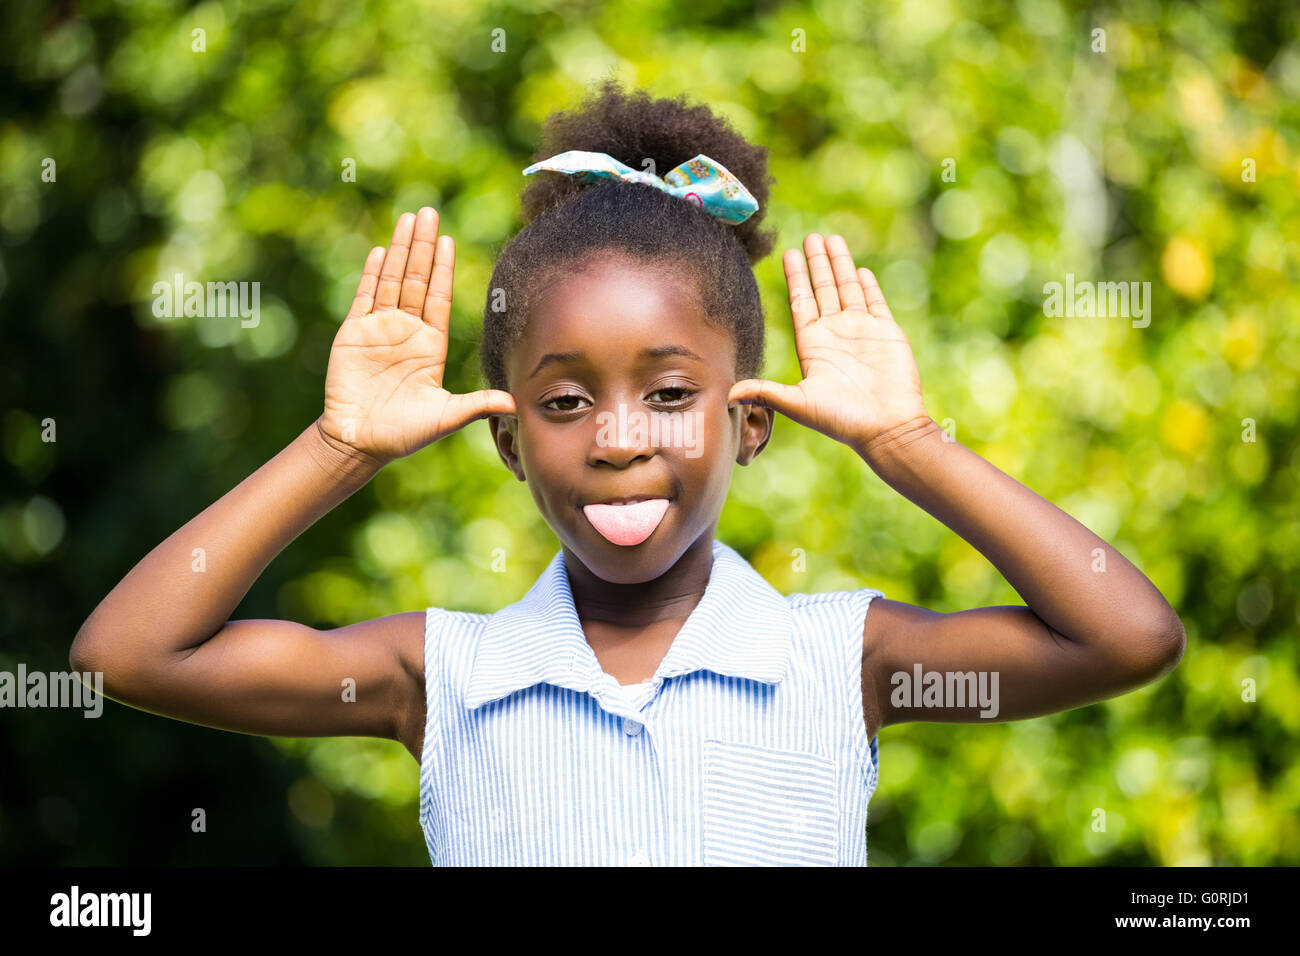 Cute mixed-race girl grimacing on a park - Stock Image